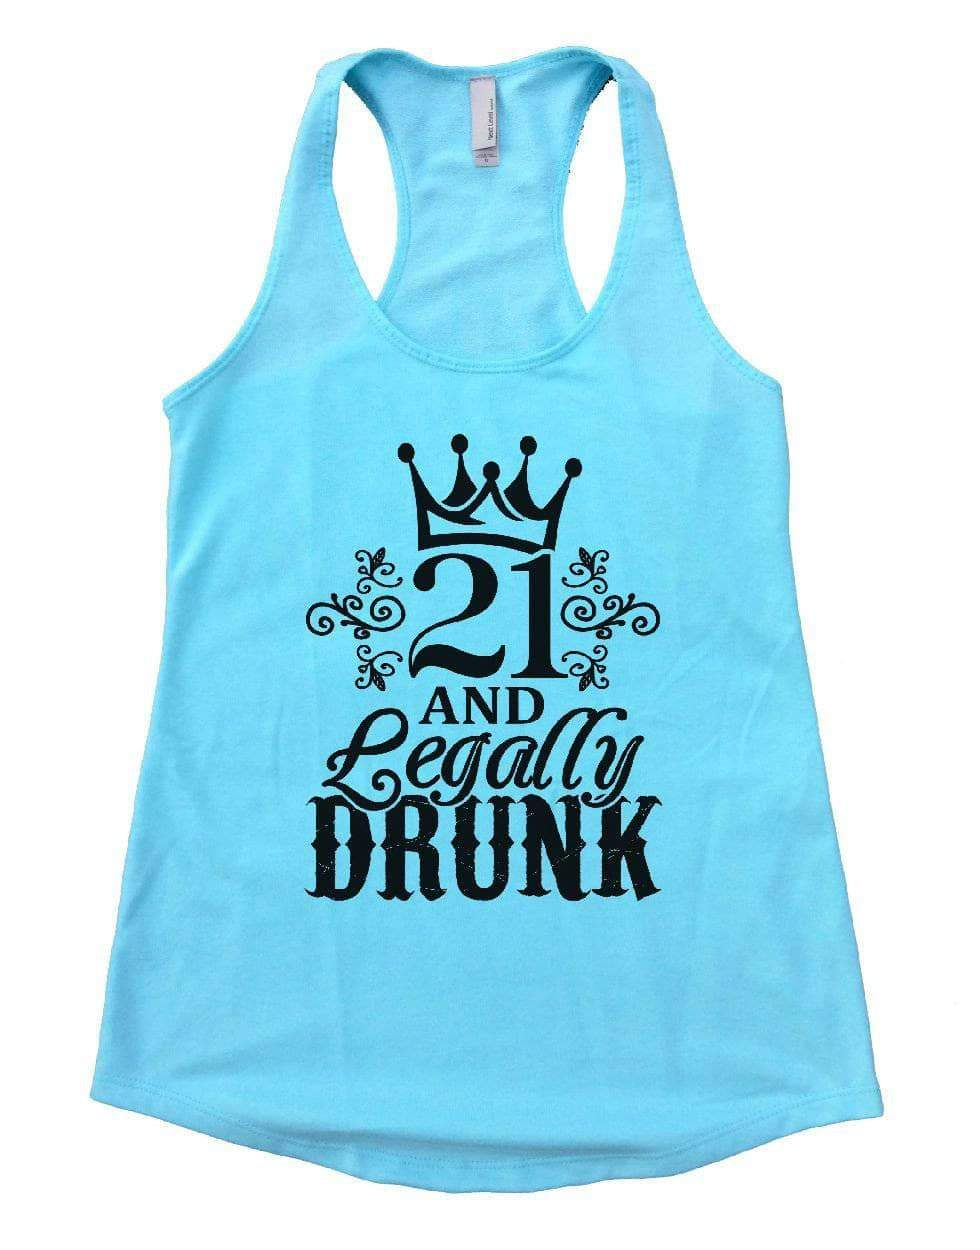 21 AND Legally DRUNK Womens Workout Tank Top Small Womens Tank Tops Cancun Blue